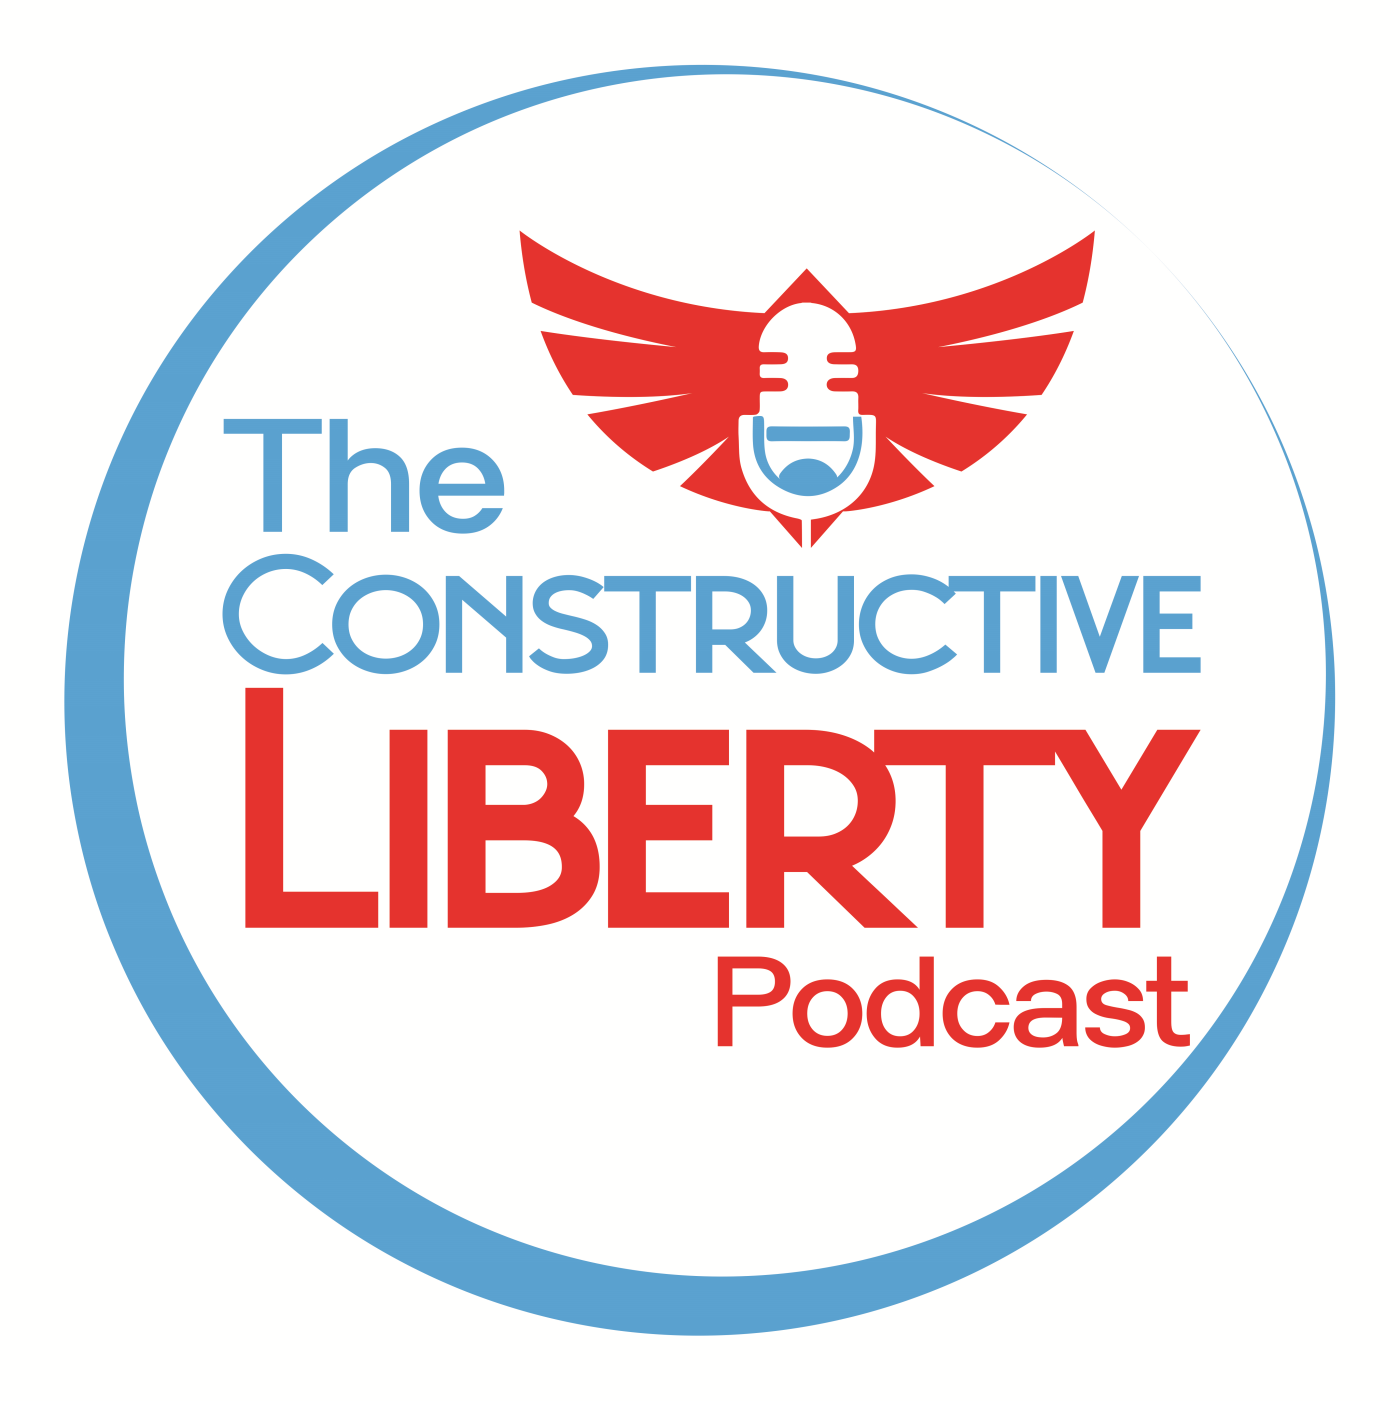 Artwork for podcast The Constructive Liberty Podcast